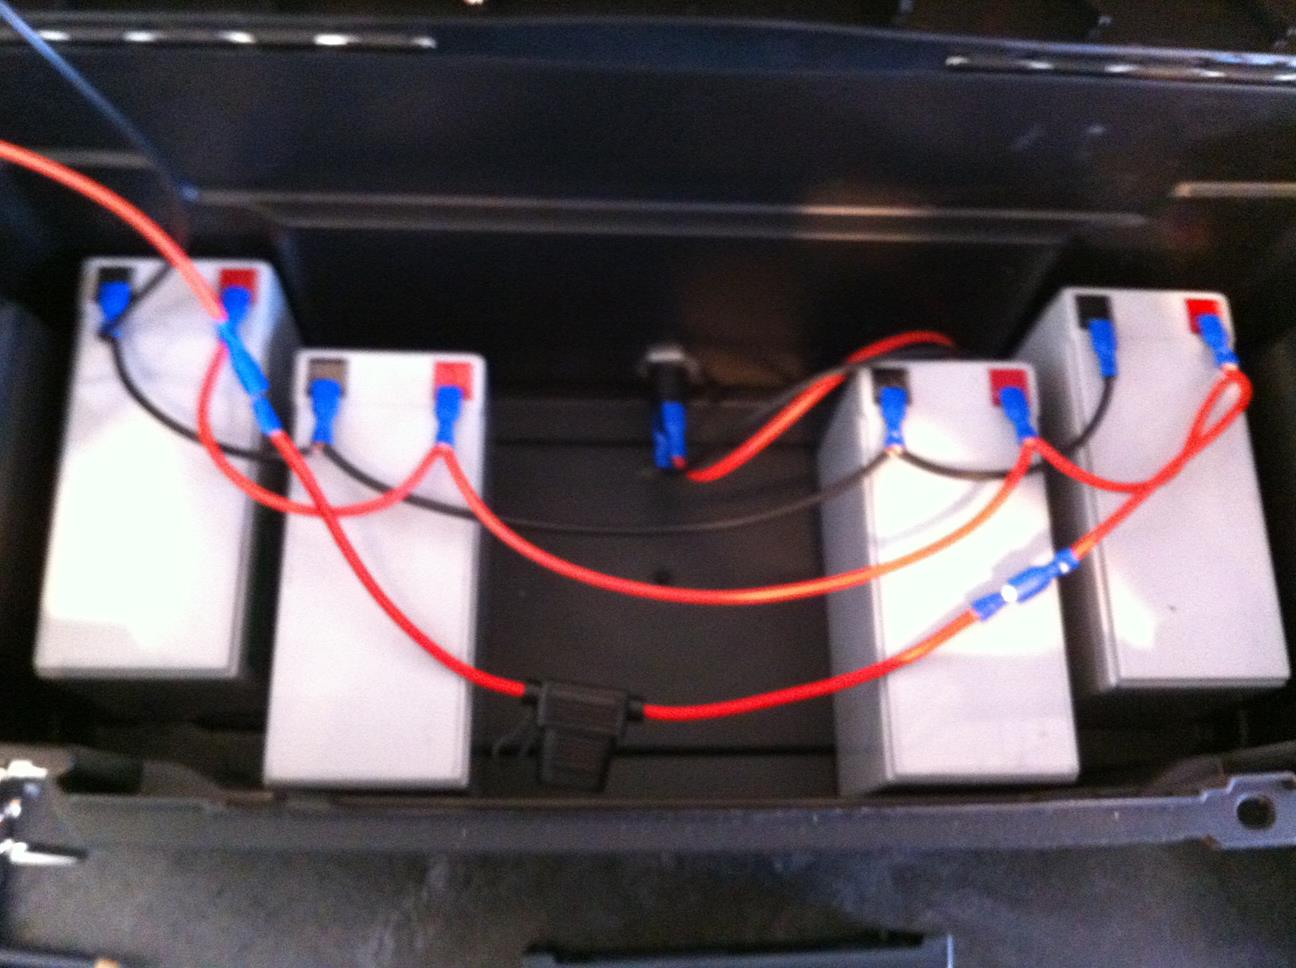 Diy Portable Solar Power Generator Also Panel Charge Controller Wiring Batteries Wired In Parallel